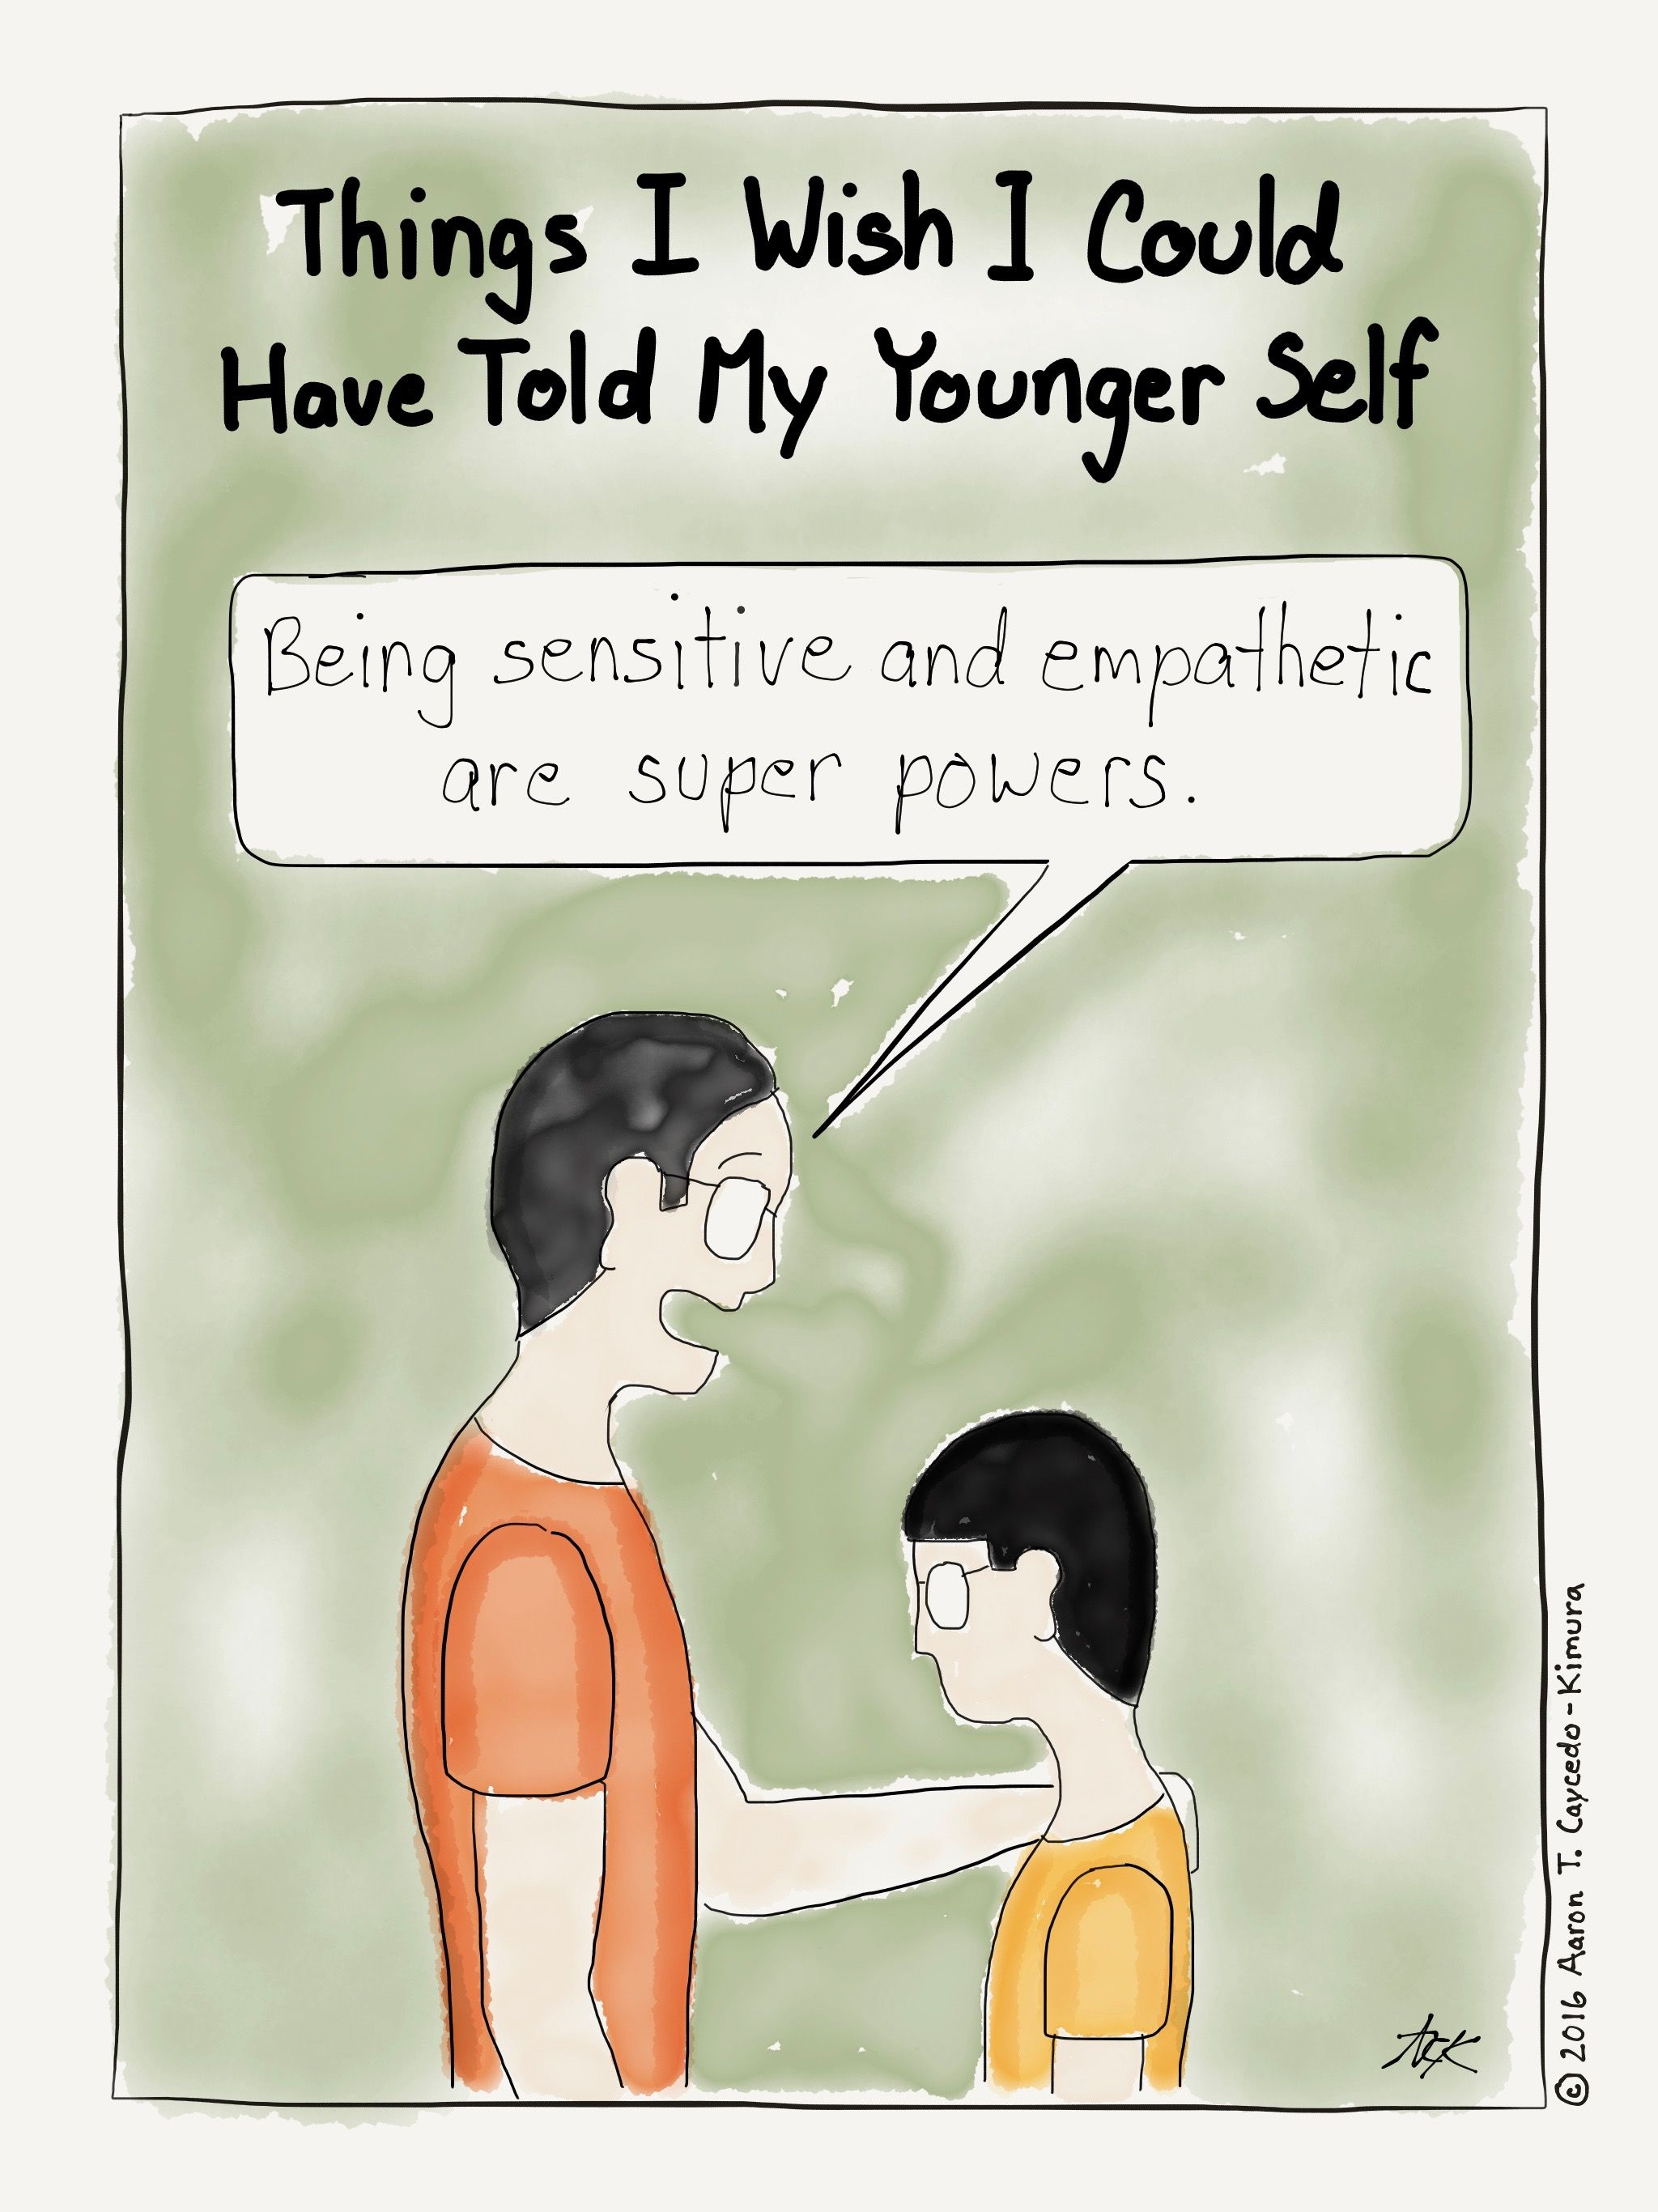 Things I Wish I Could Have Told My Younger Self